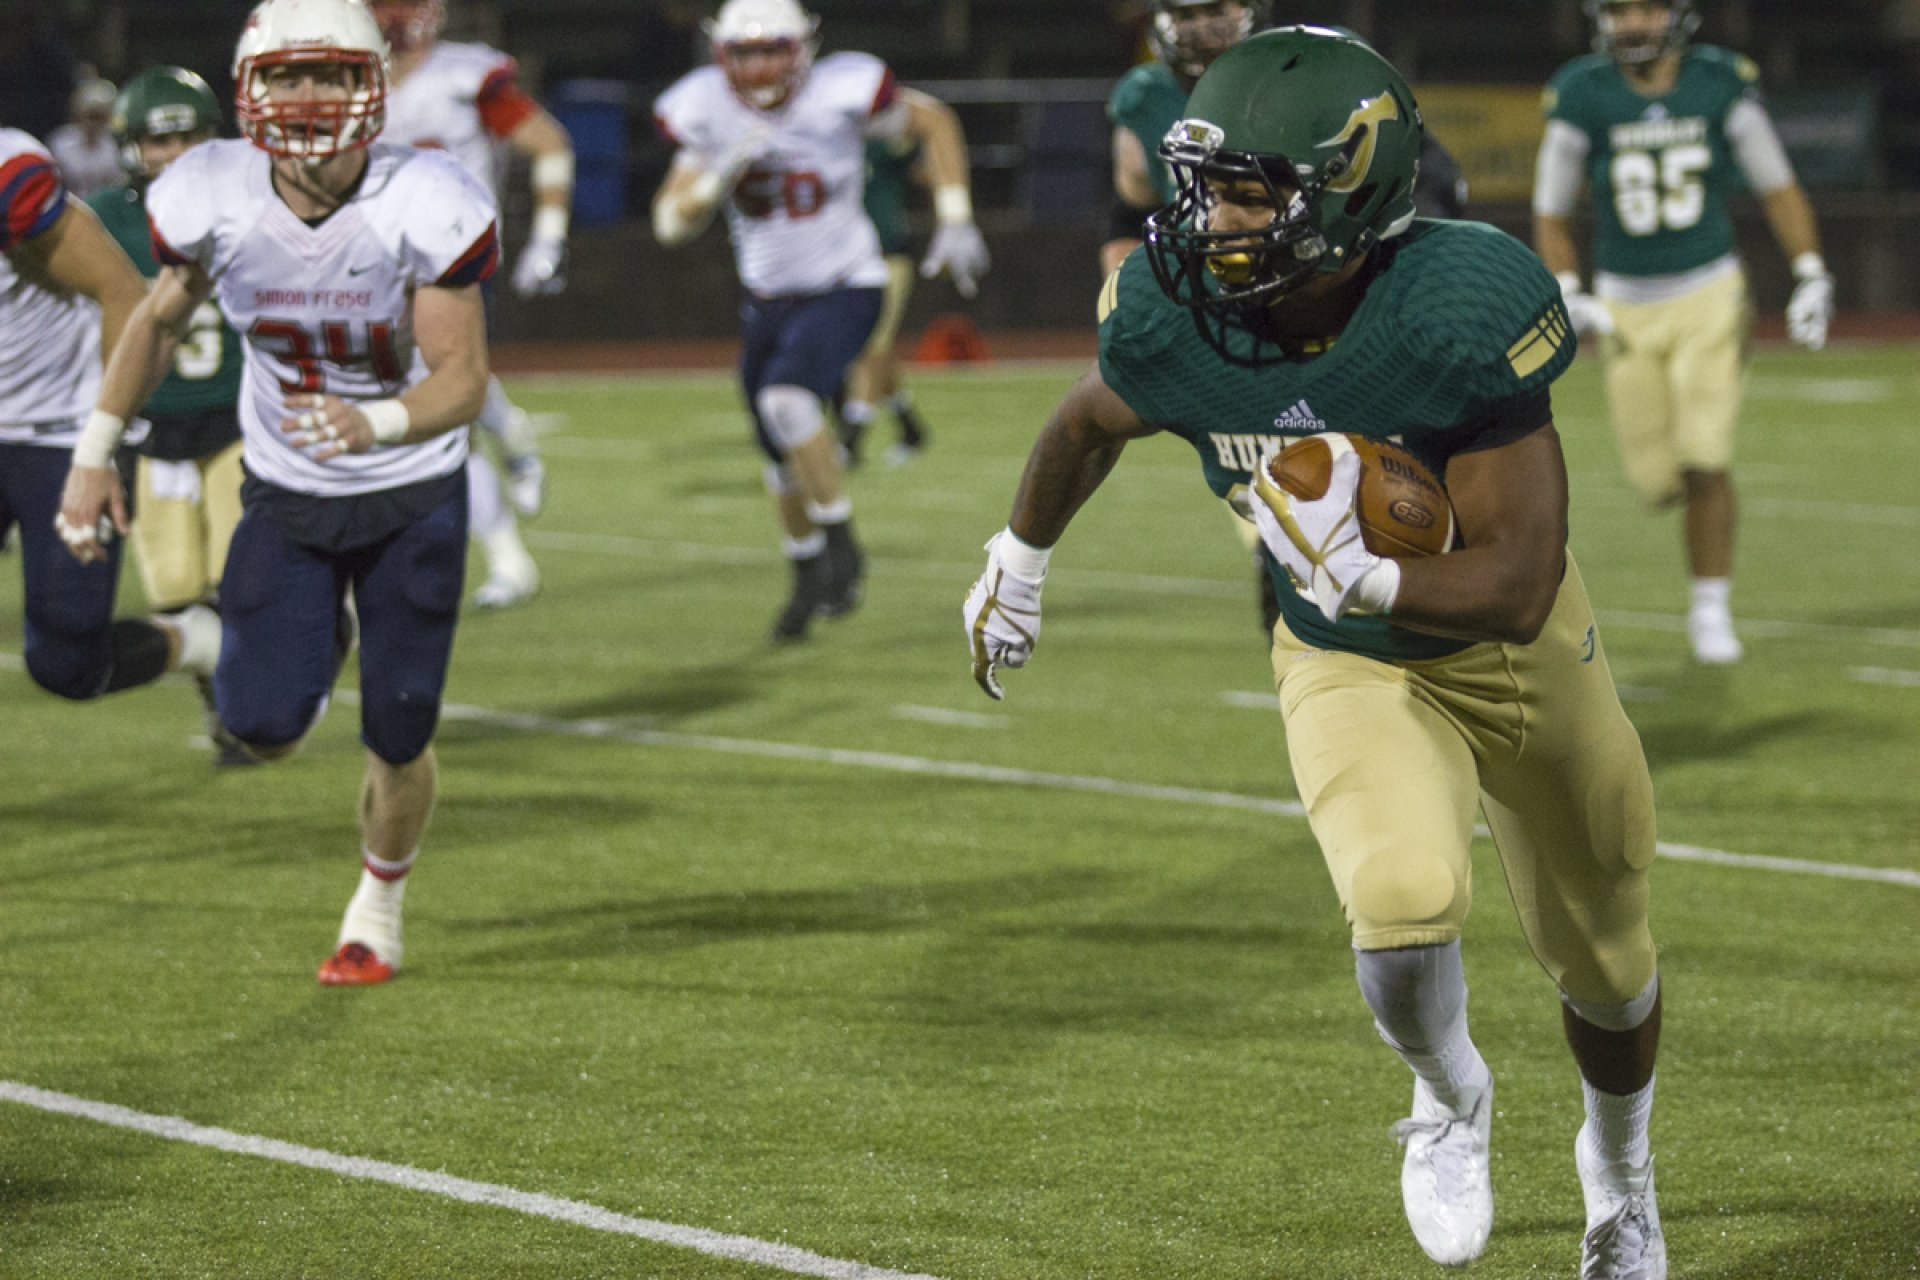 Isaiah Hall, right, gets to the edge of the field and turns toward the end zone for the Humboldt State University offense while defeating Simon Fraser 72-14 on Saturday, Sept. 16. | Photo by Diego Linares